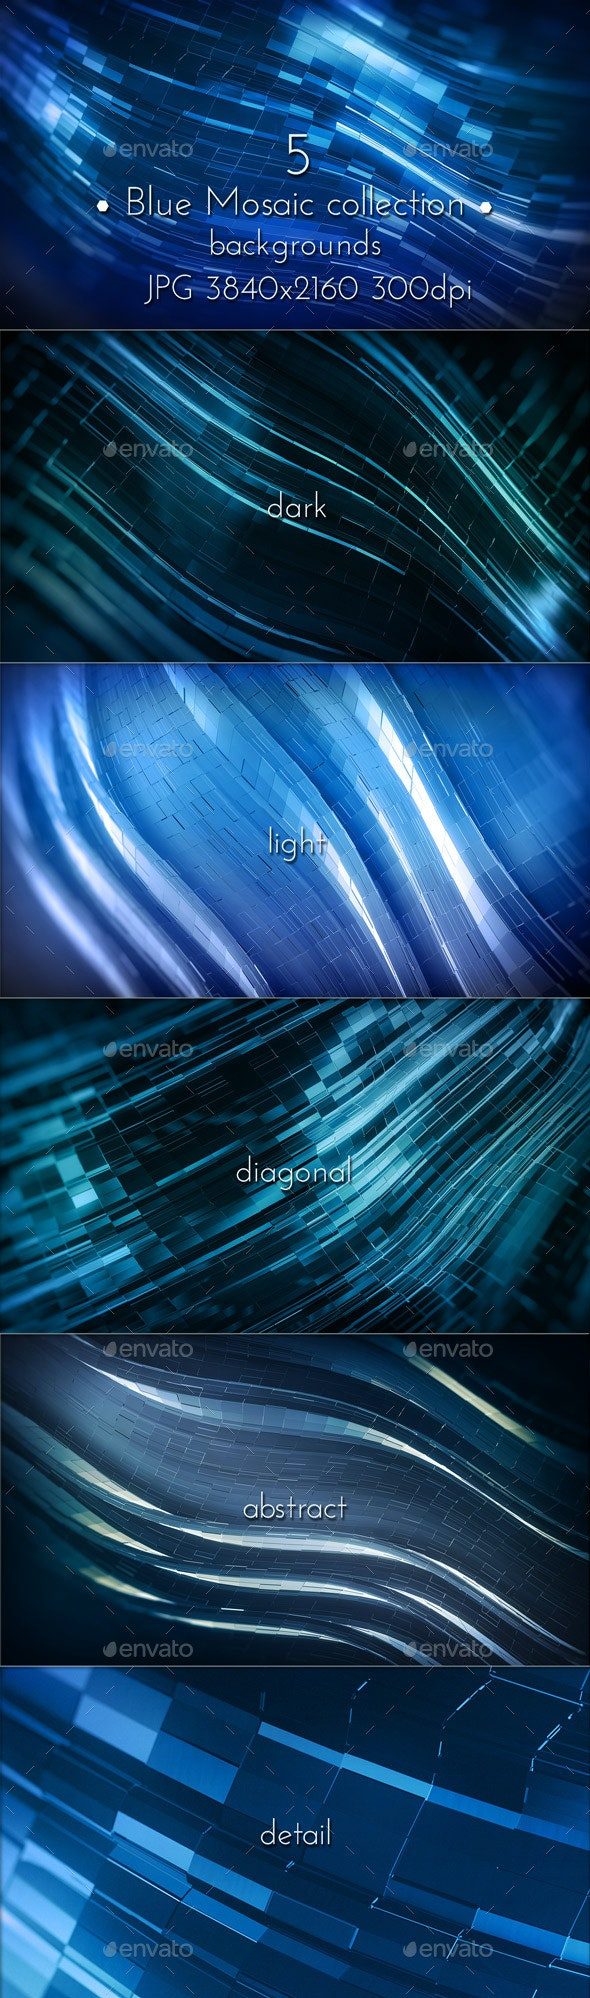 Dark Blue Background - Abstract Backgrounds